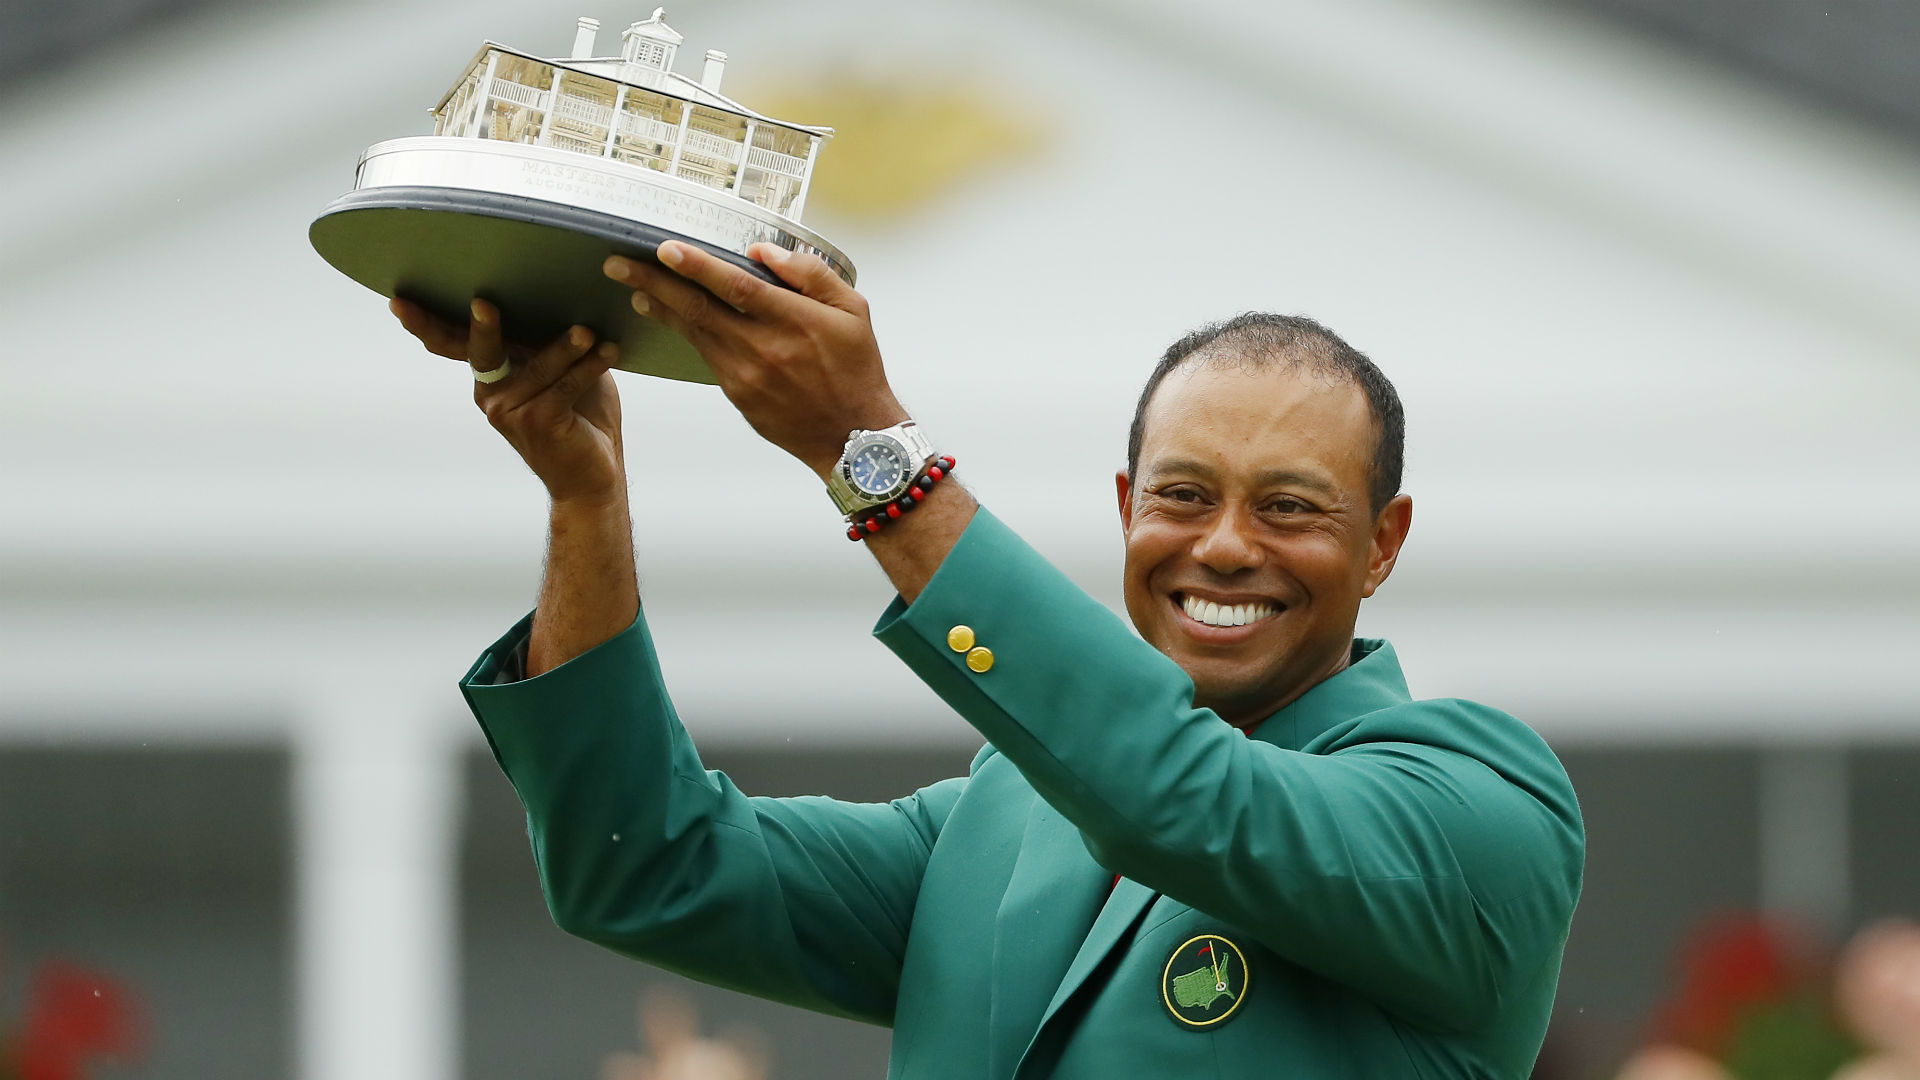 On course for 16 and 17? Woods' fond major memories at Bethpage and Pebble Beach